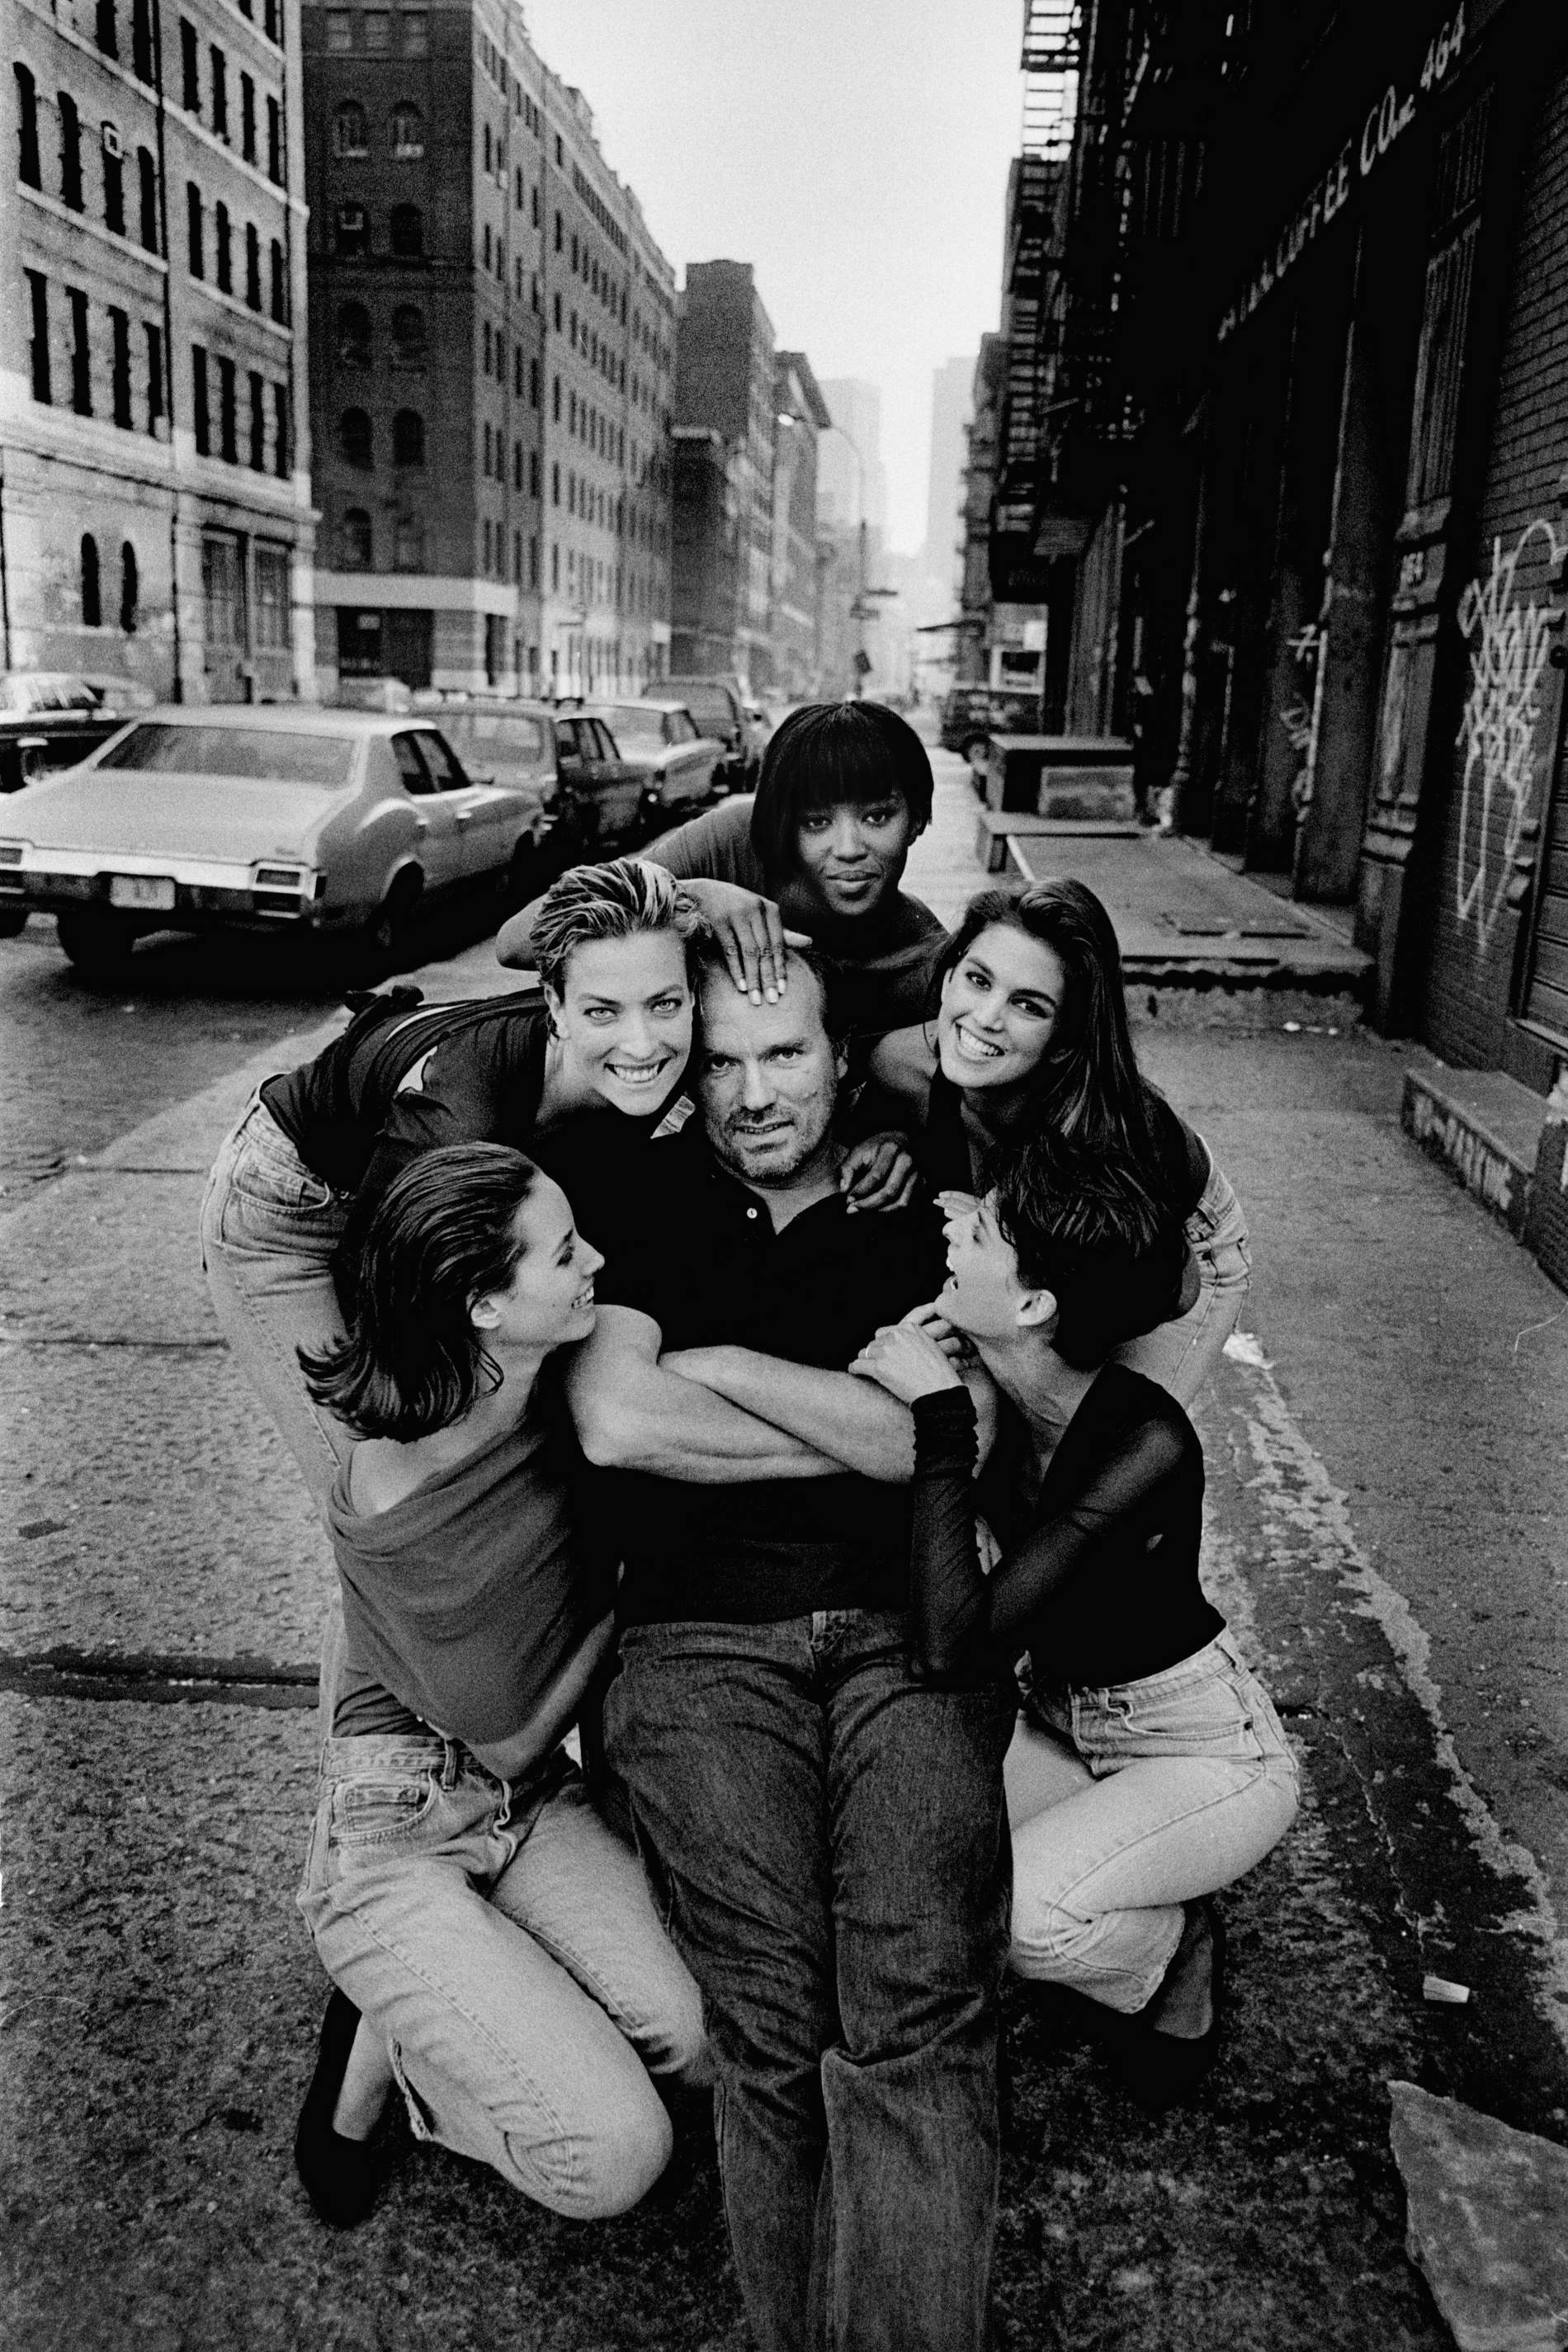 Bts on the iconic 90s peter lindbergh image of the supers